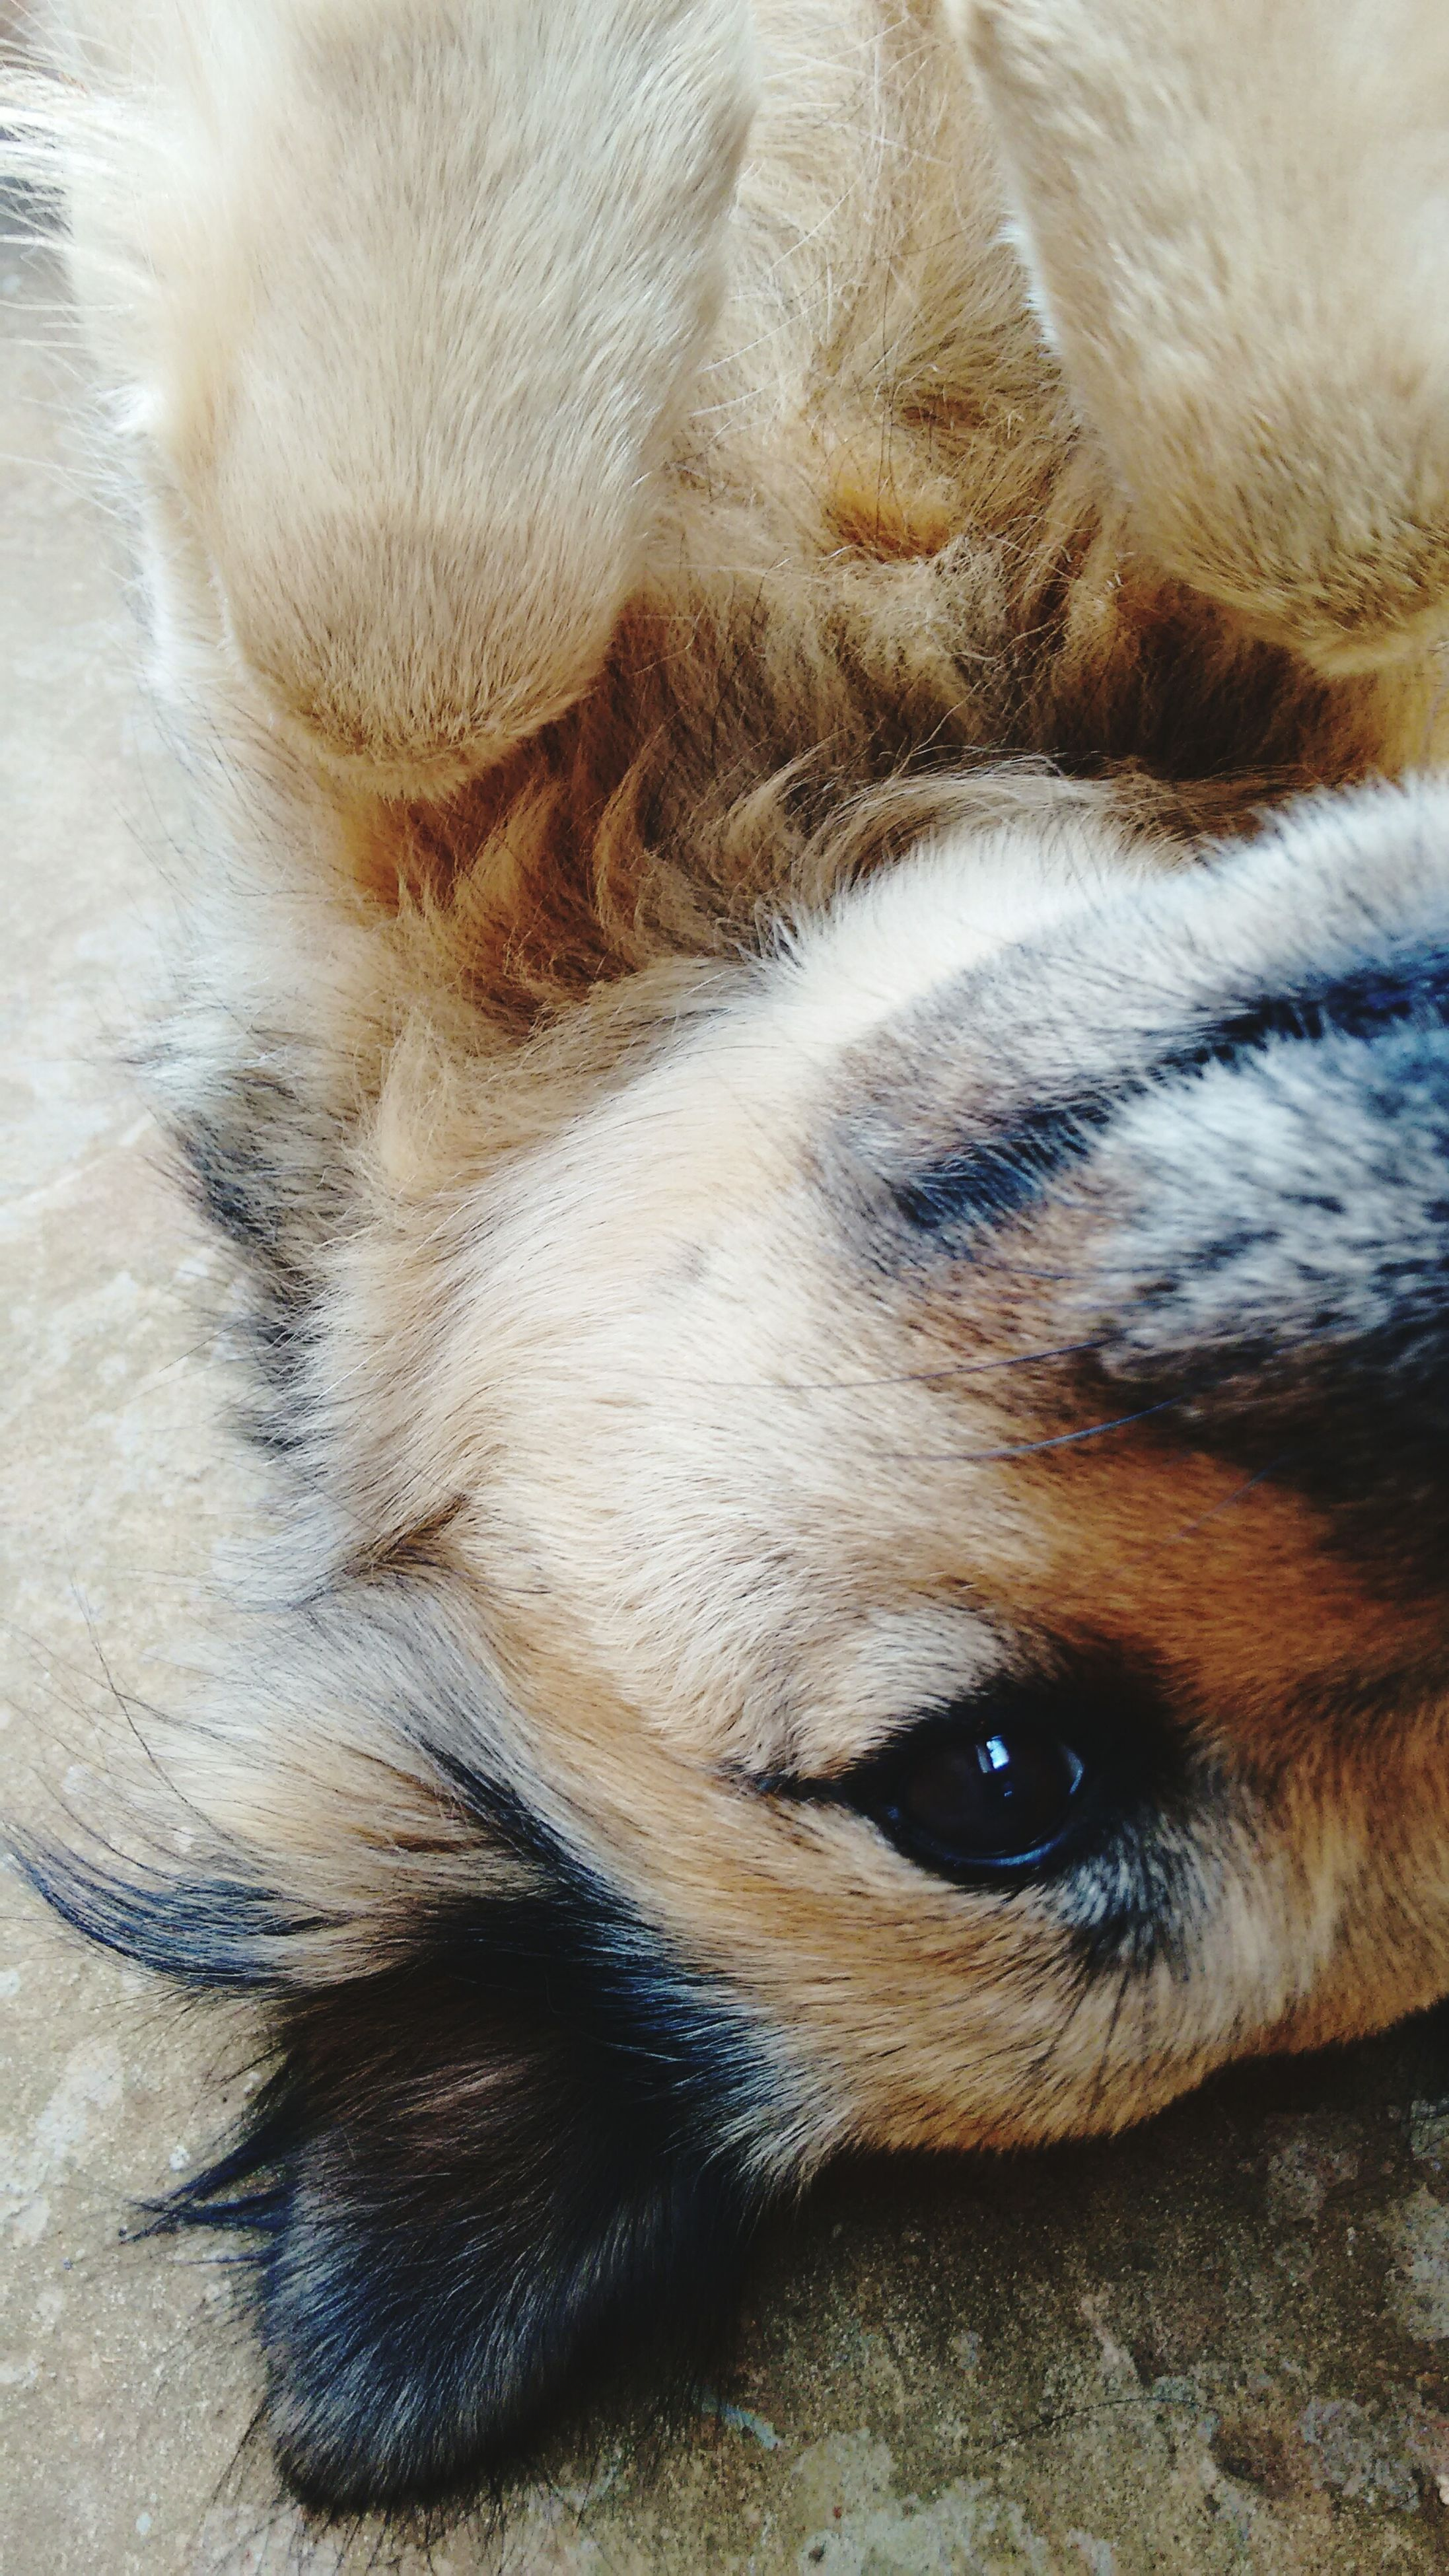 animal themes, domestic animals, one animal, mammal, pets, dog, animal head, close-up, animal body part, relaxation, sleeping, lying down, resting, animal hair, no people, indoors, eyes closed, high angle view, whisker, portrait